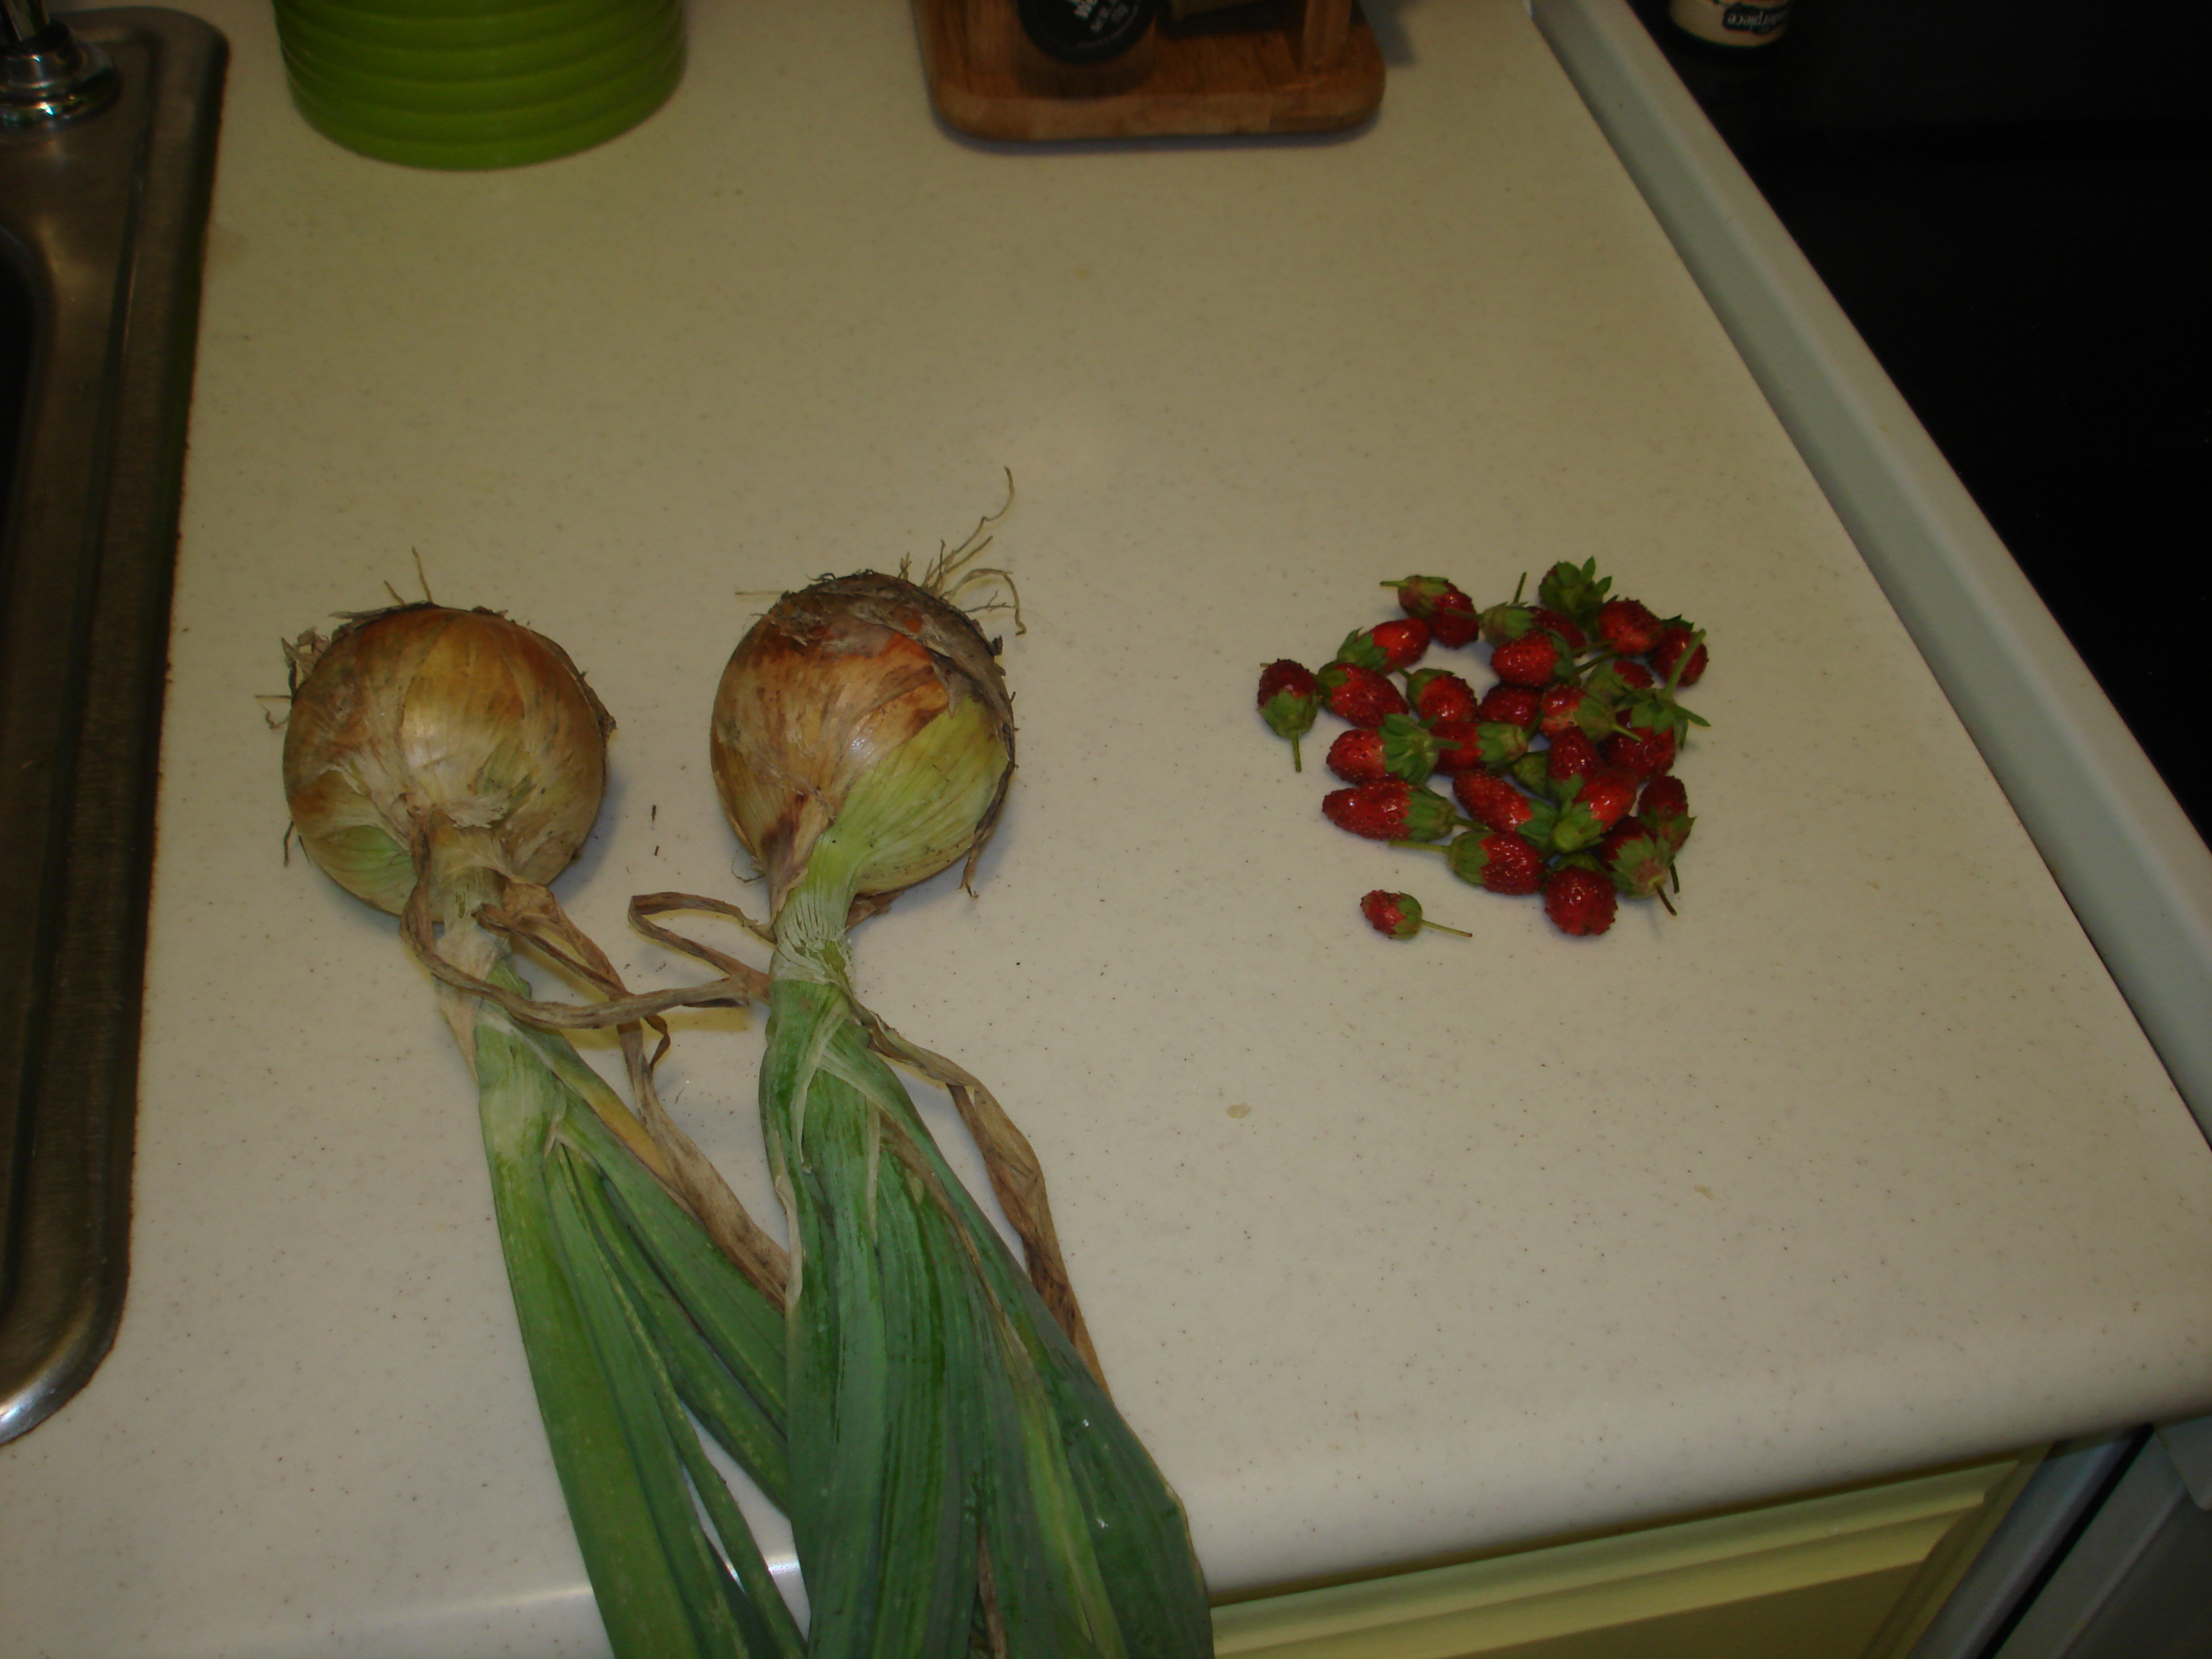 Two onions and a handful of strawberries